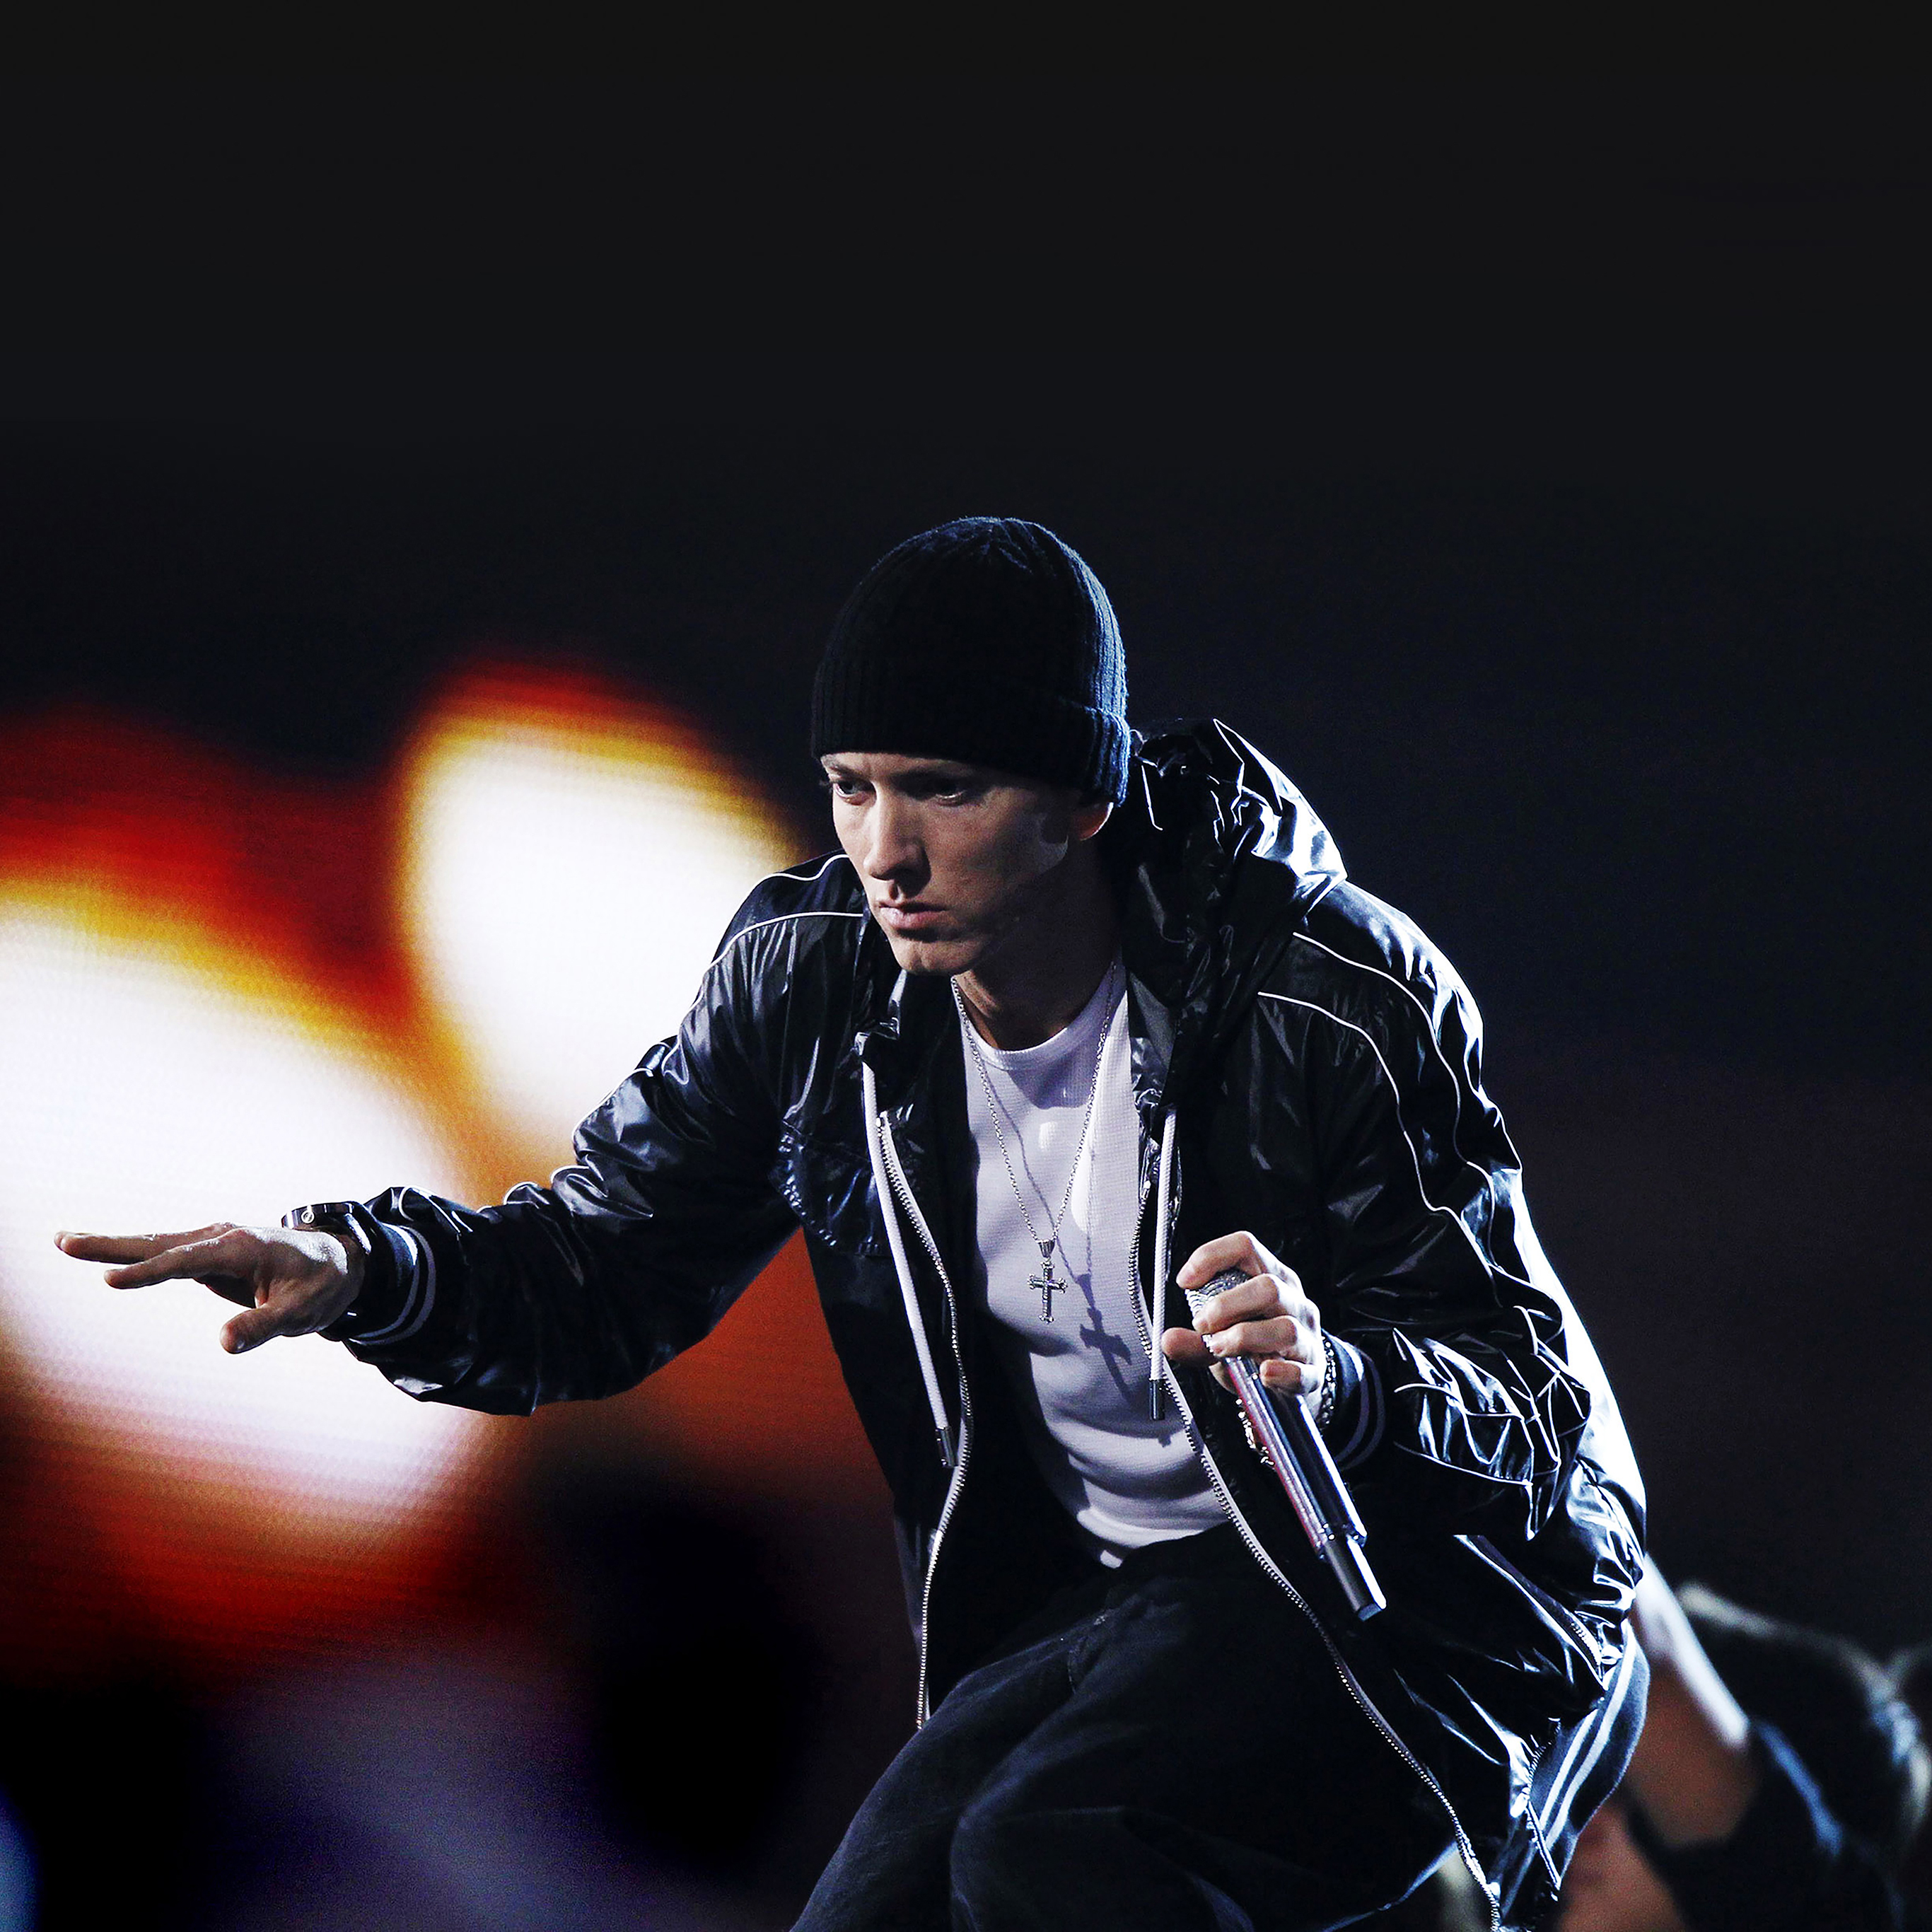 eminem essay In a famous essay late billboard magazine editor-in-chief timothy white targeted eminem and his label for exploiting the world's misery though mostly dismissive of the criticism, mathers claimed in some interviews that he was simply voicing the deviant thoughts of his characters.